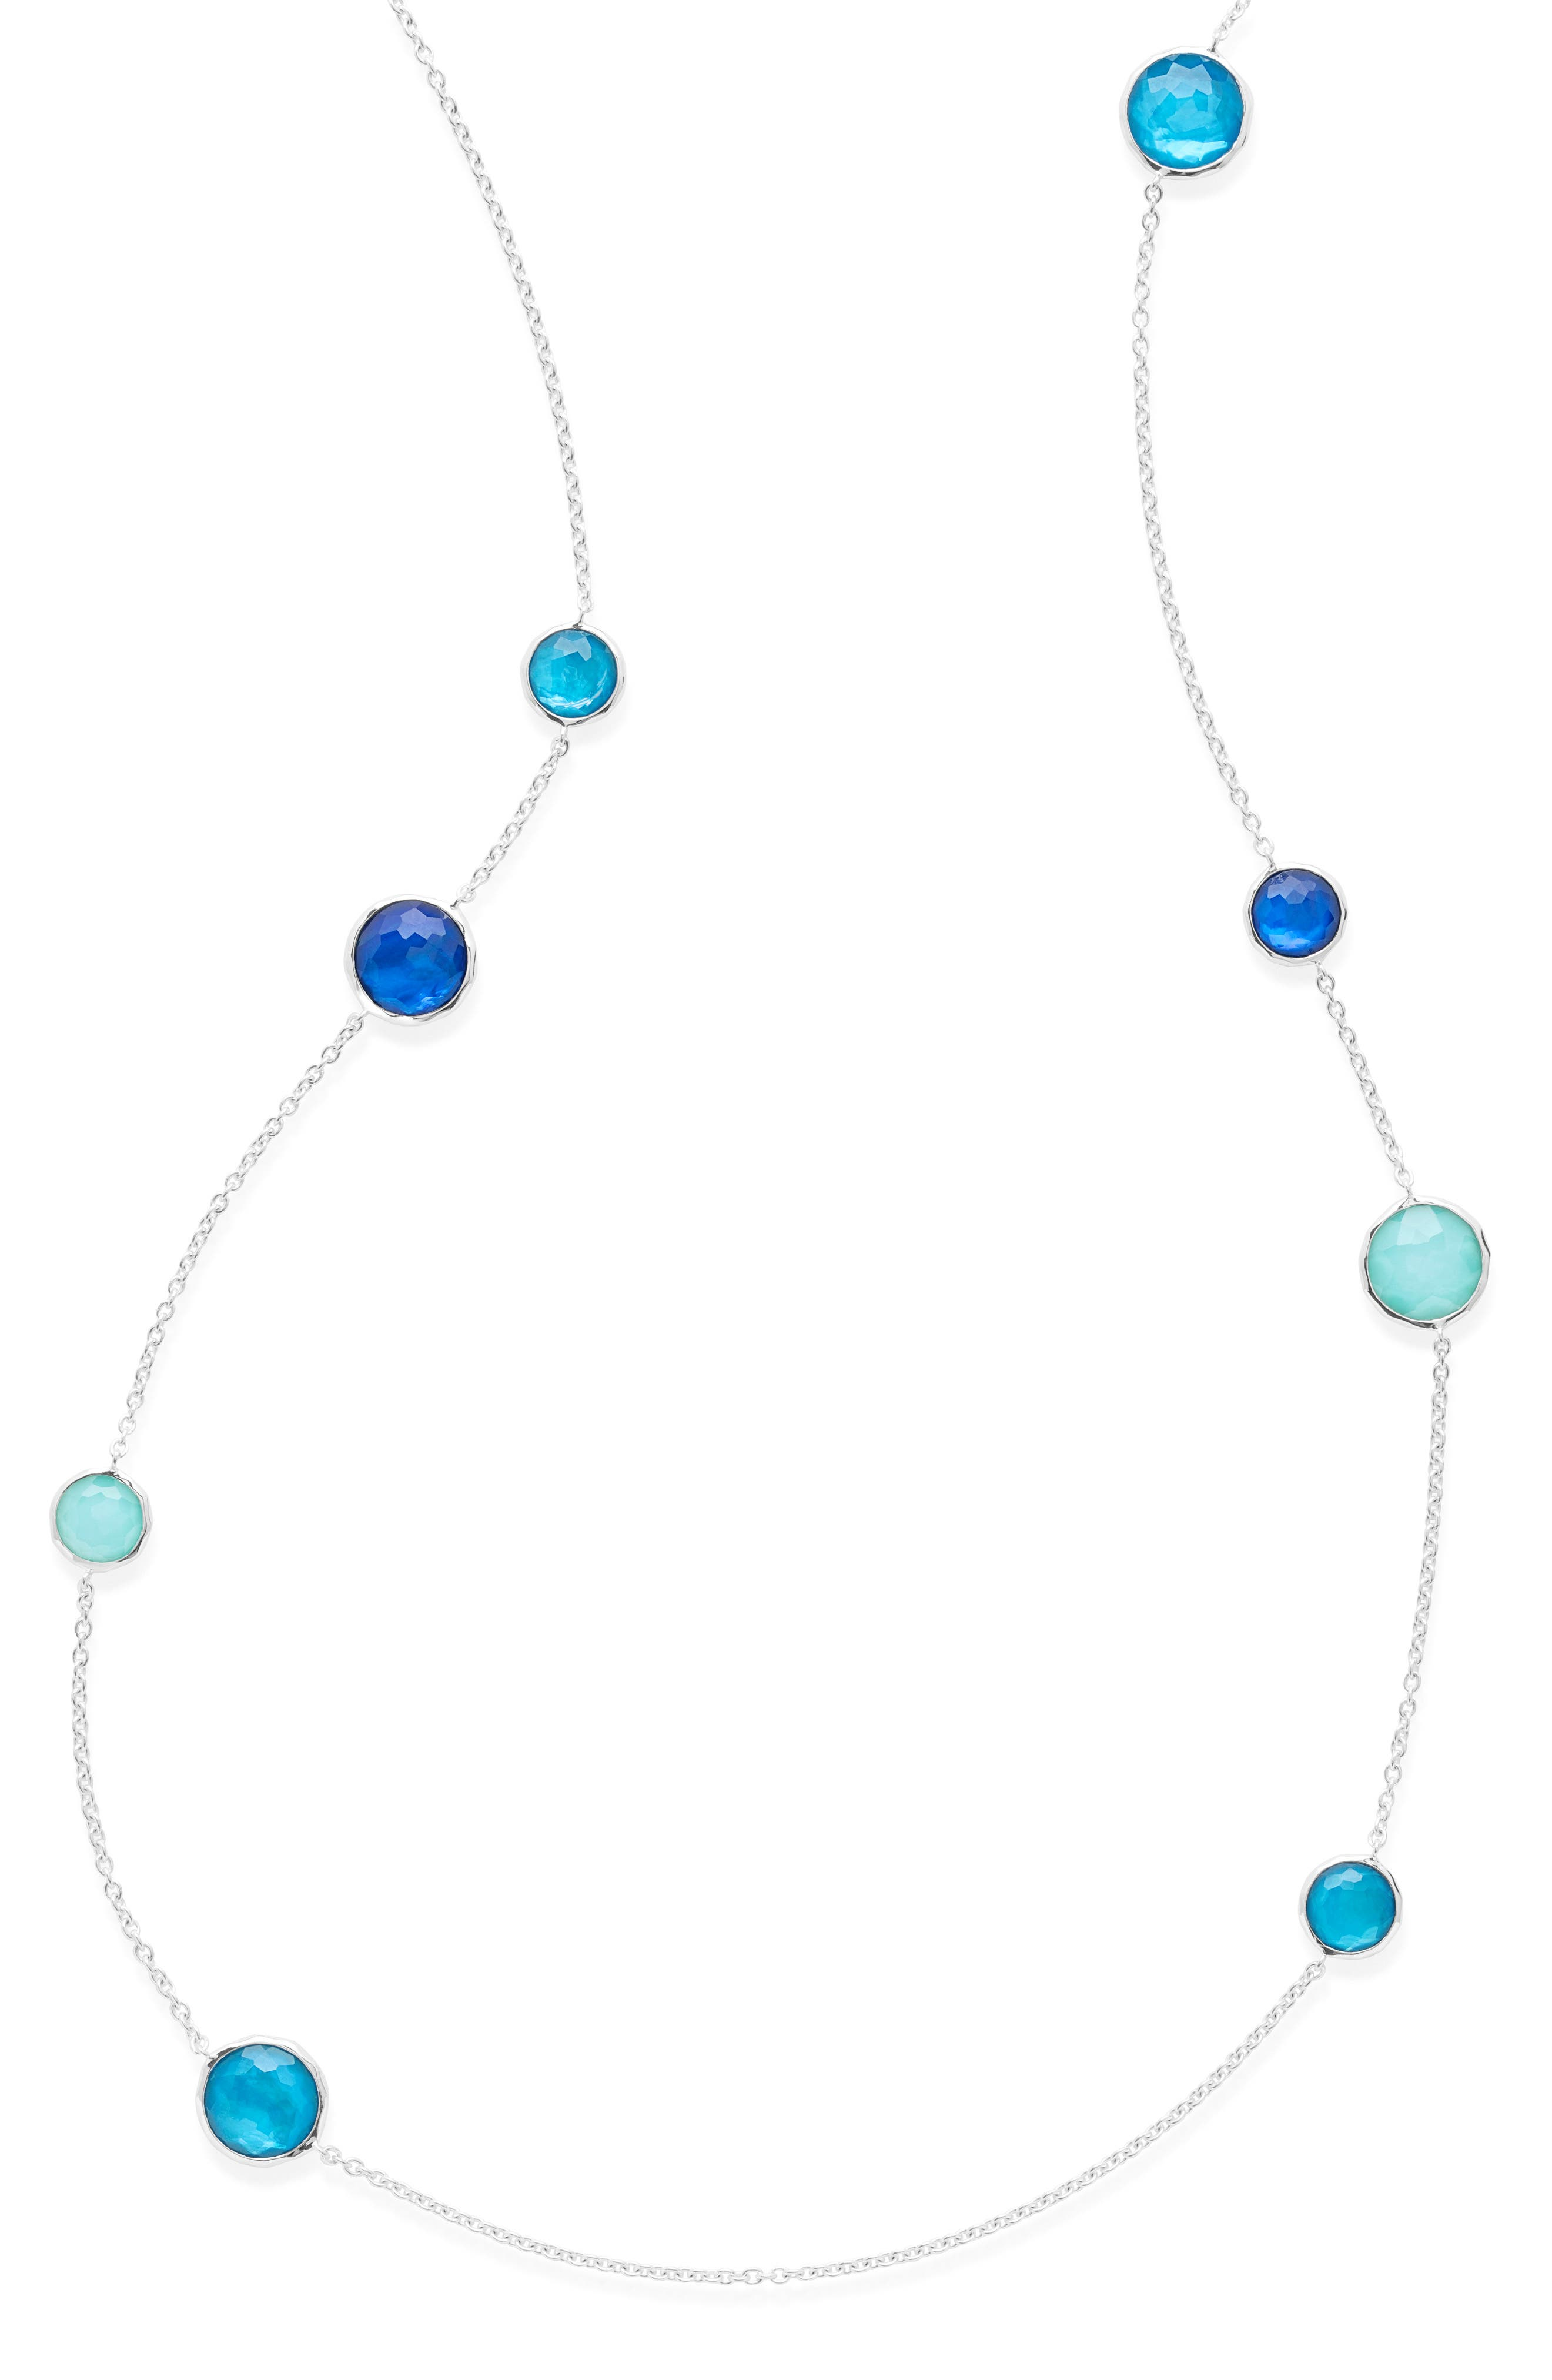 Main Image - Ippolita Wonderland Station Necklace